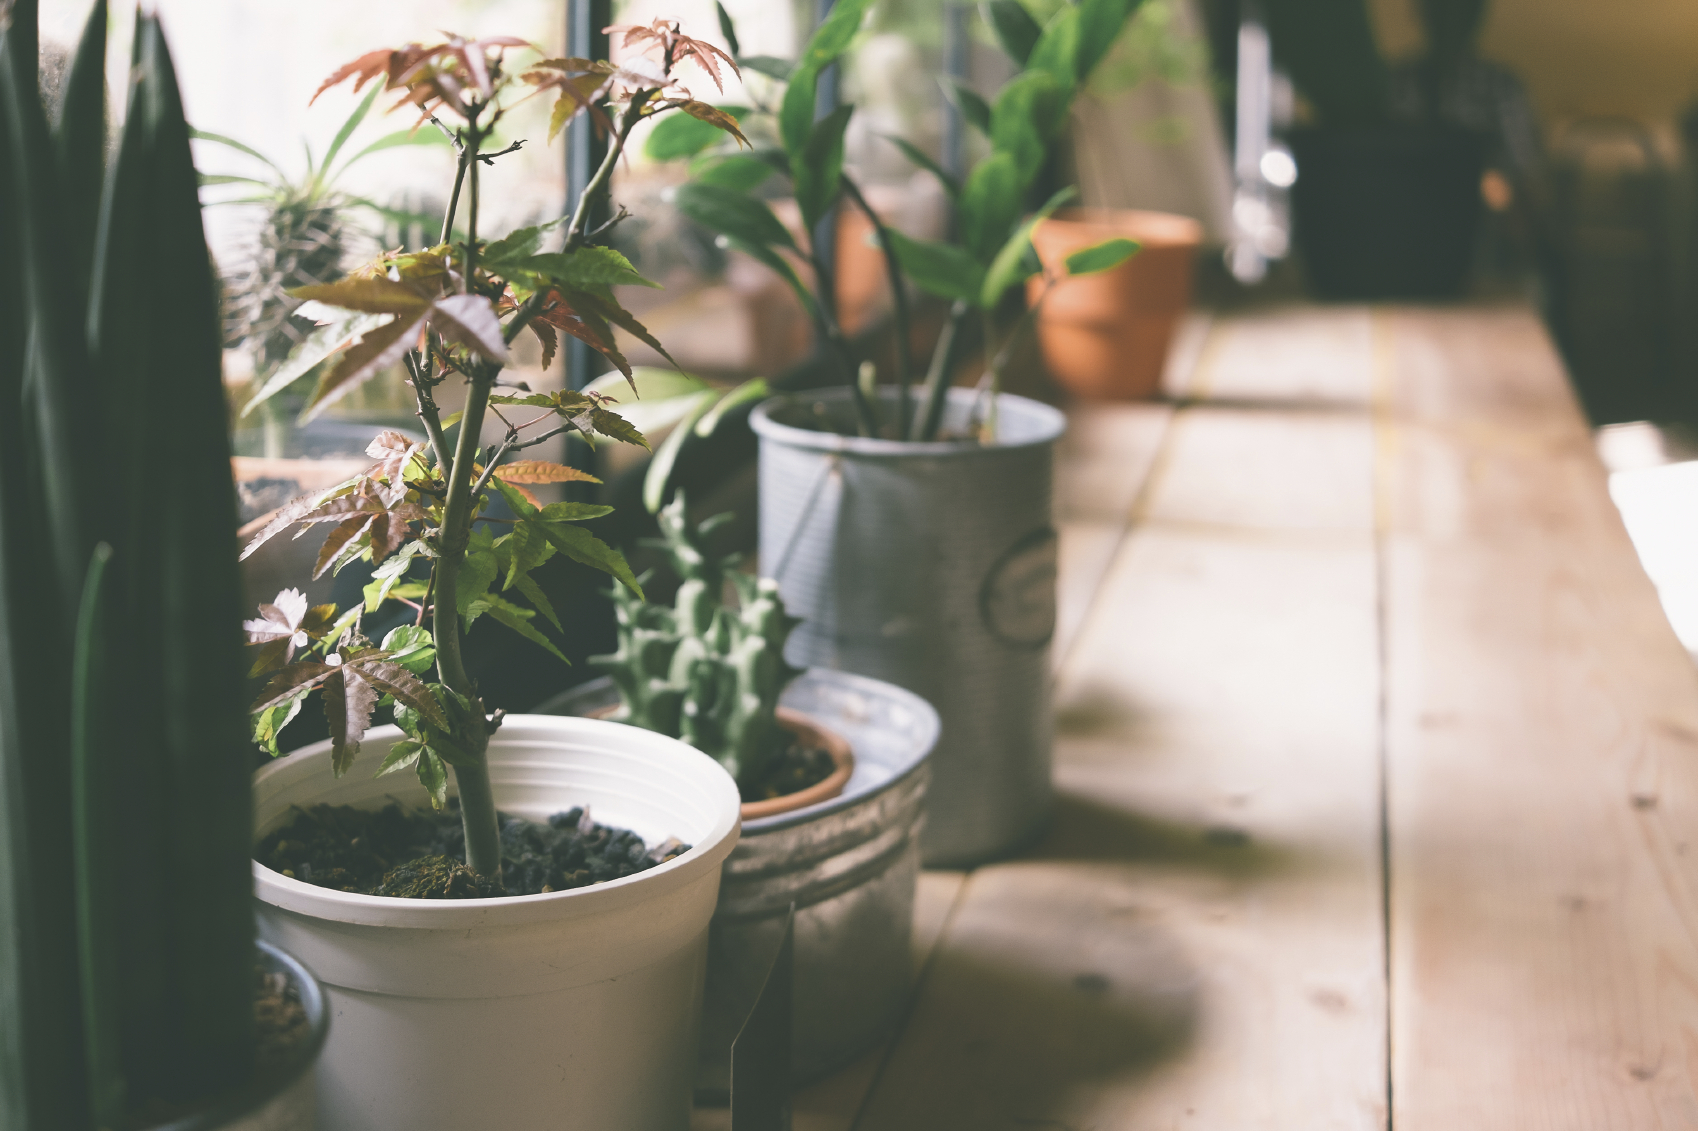 10 Common Houseplants And How To Take Care Of Them Zing Blog By Quicken Loans Zing Blog By